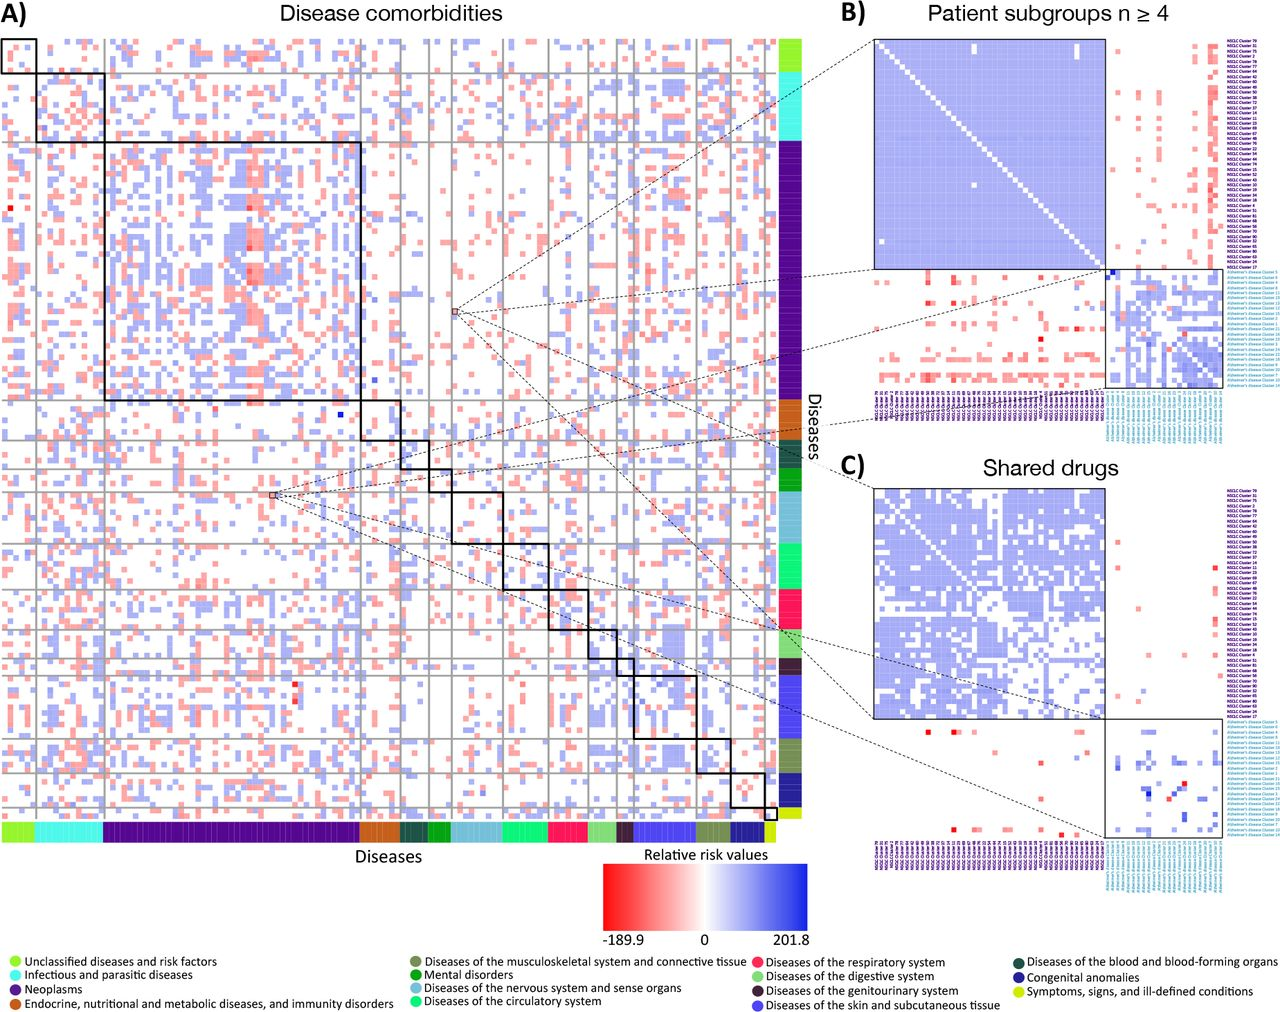 Unveiling the molecular basis of disease co-occurrence